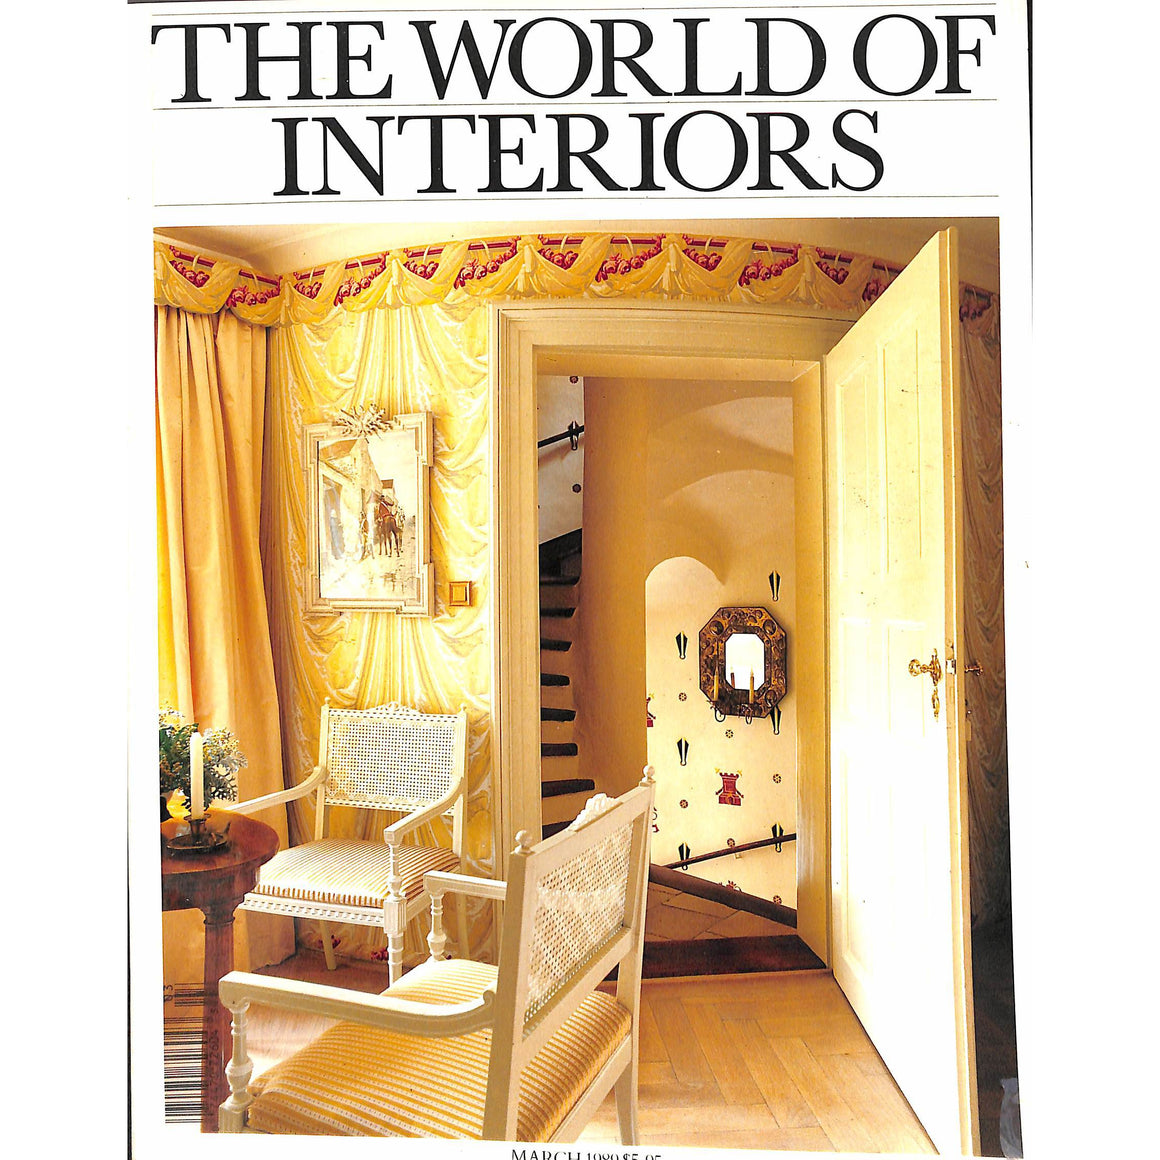 The World of Interiors March 1989